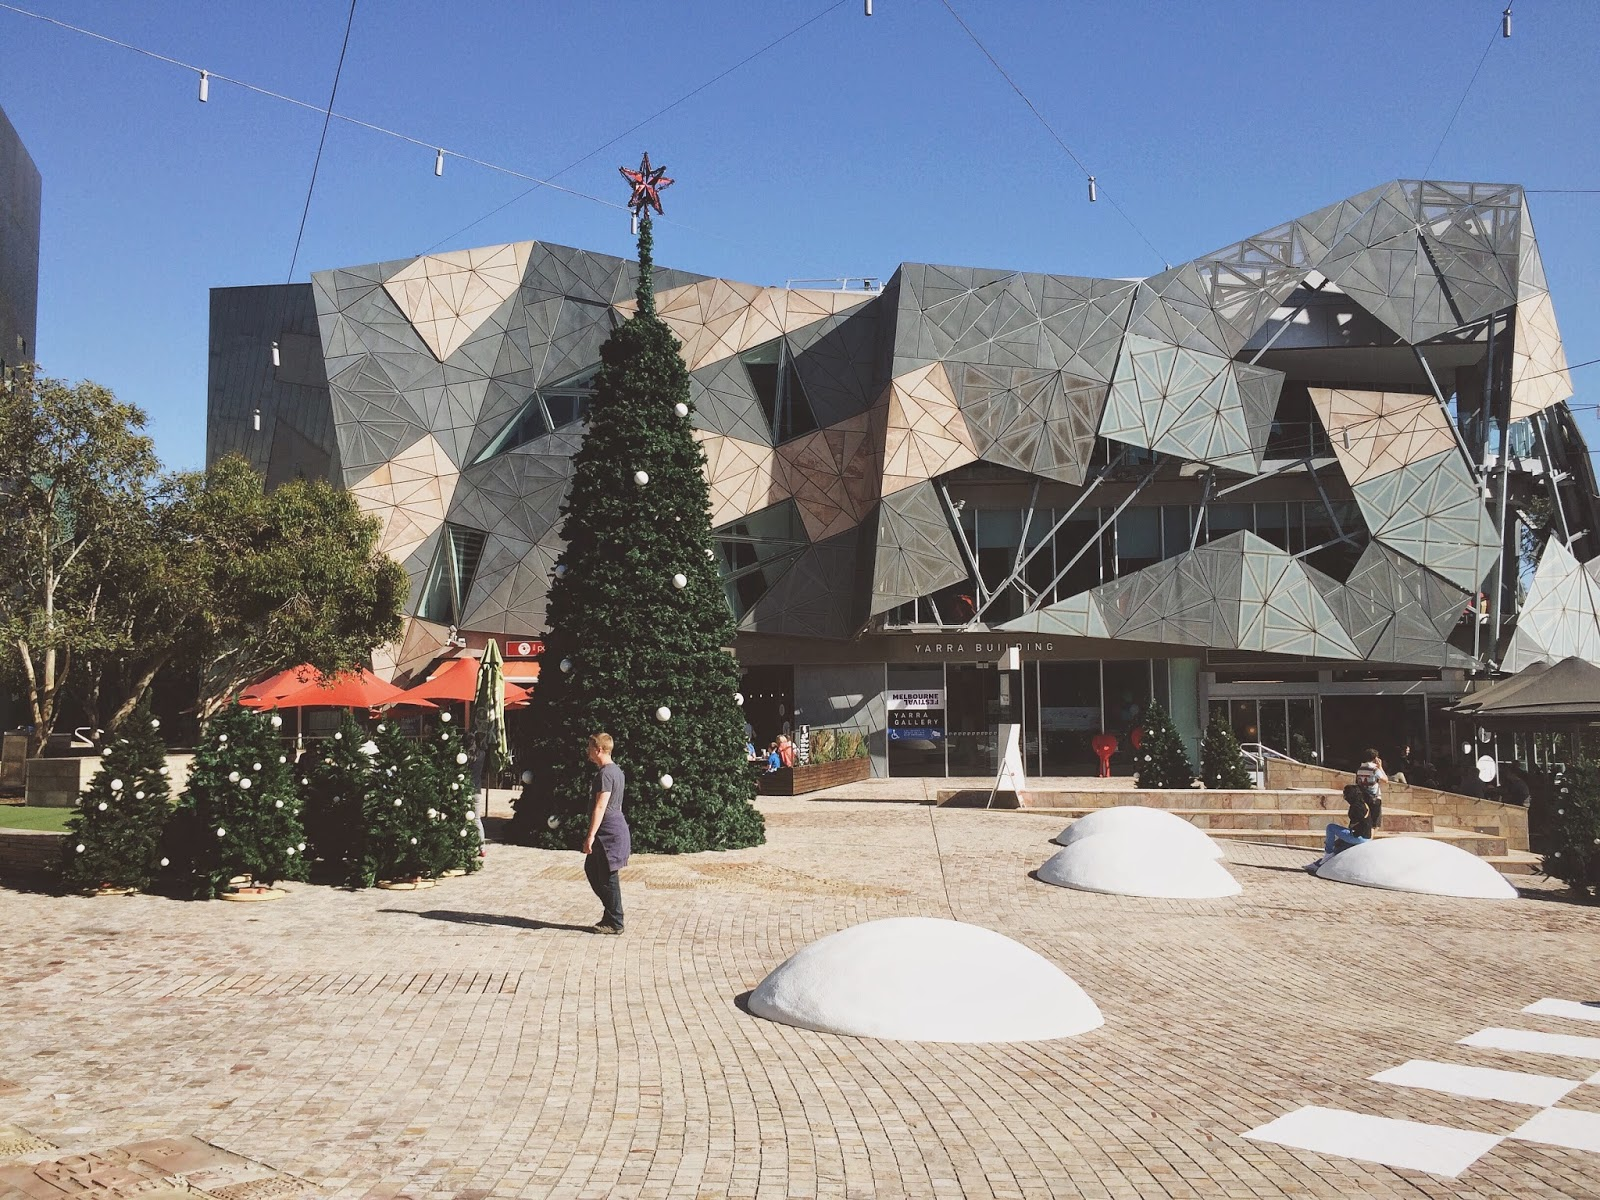 Bramble and Thorn, Federation Square, Christmas